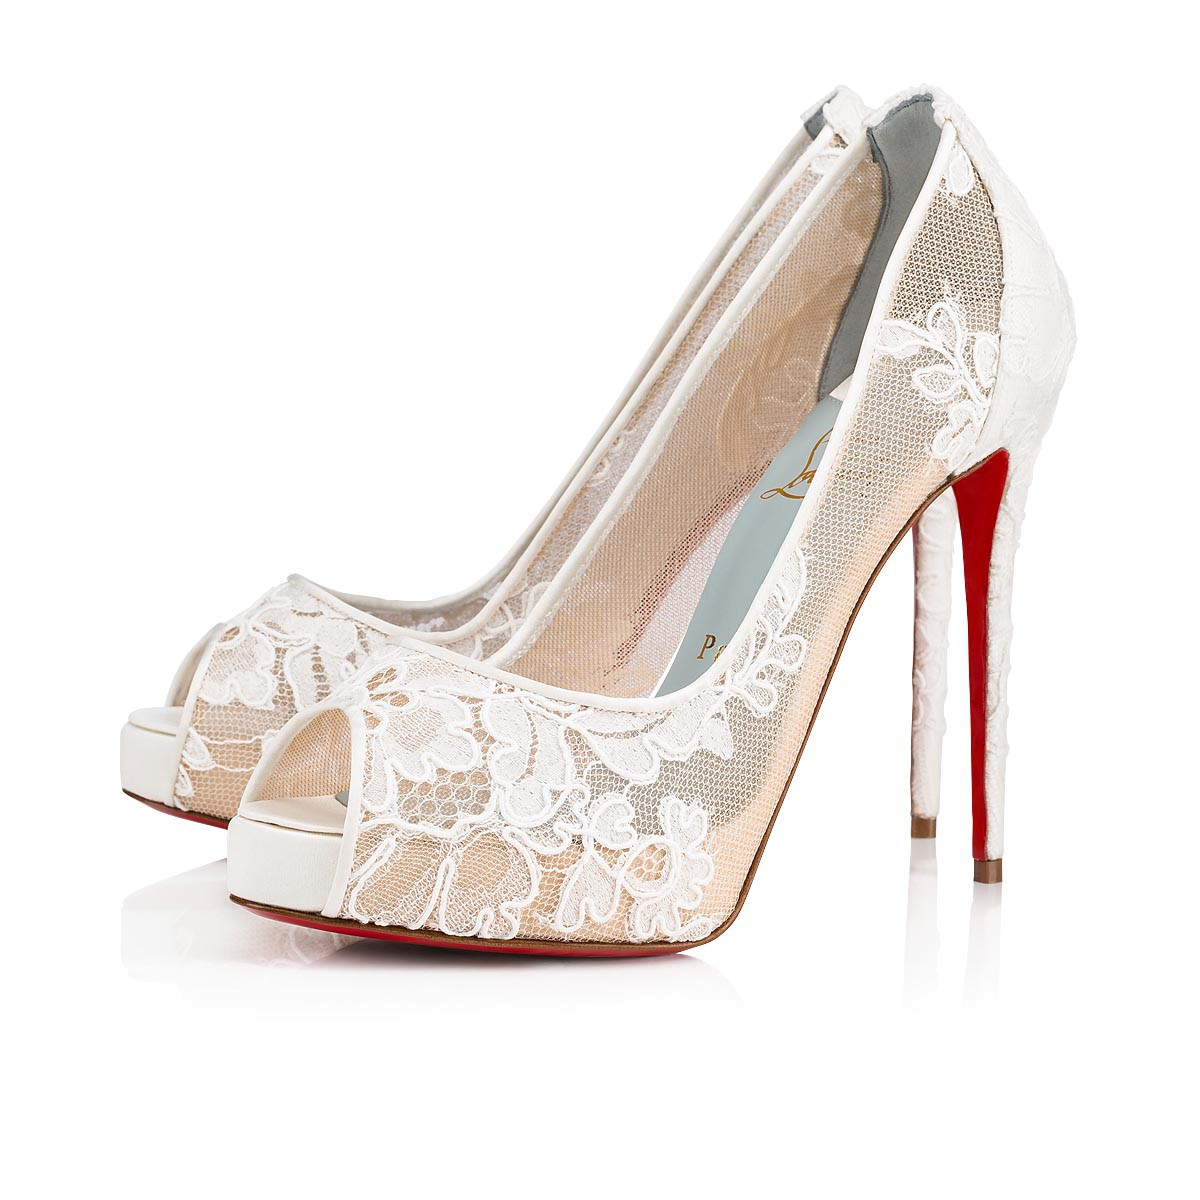 christianlouboutin-verylace-1191593_W021